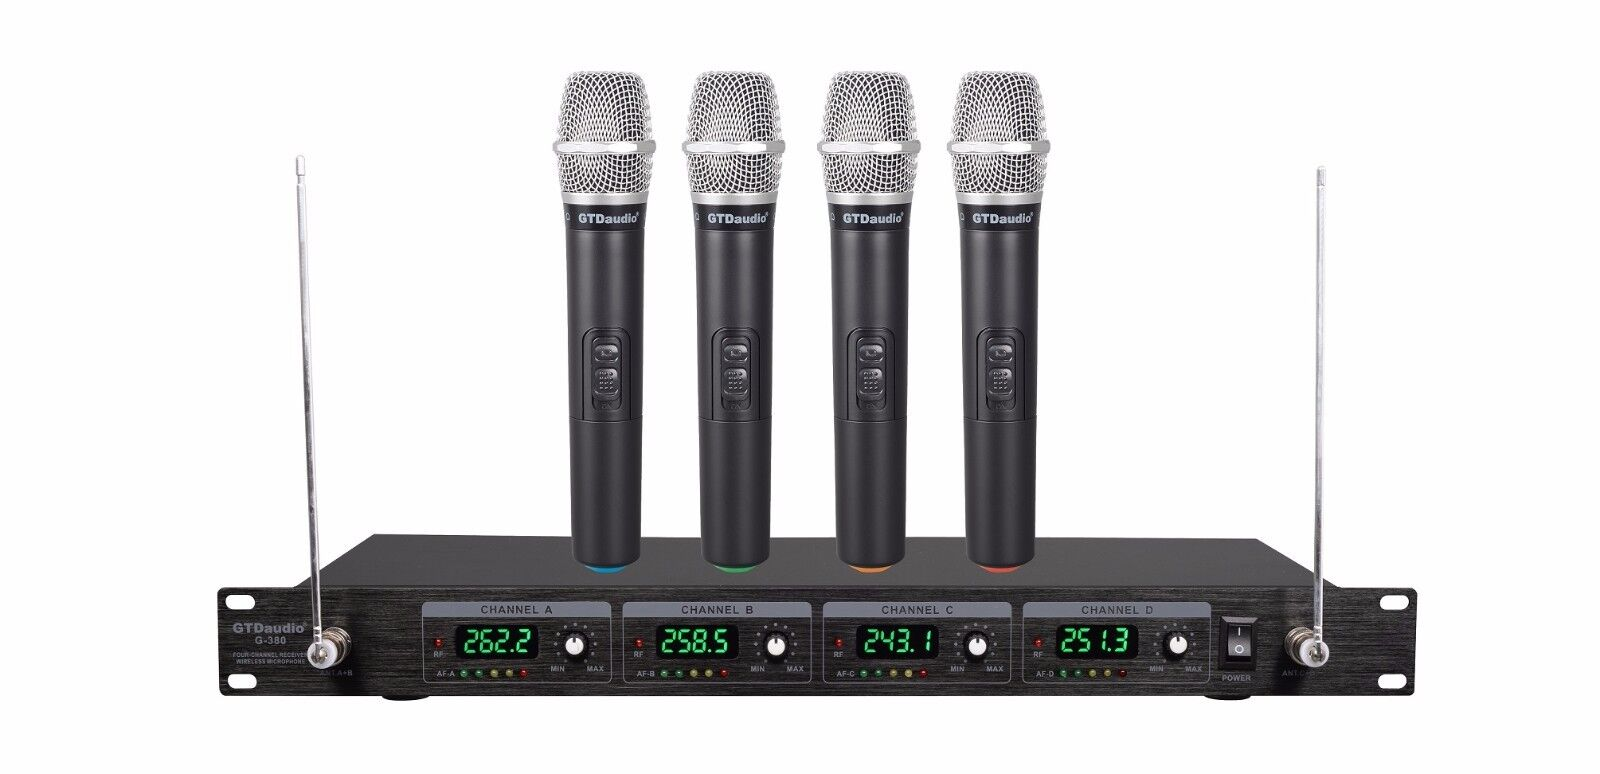 GTD Audio 4 Channel VHF Handheld Wireless Microphone System Mic (Brand New) 380H